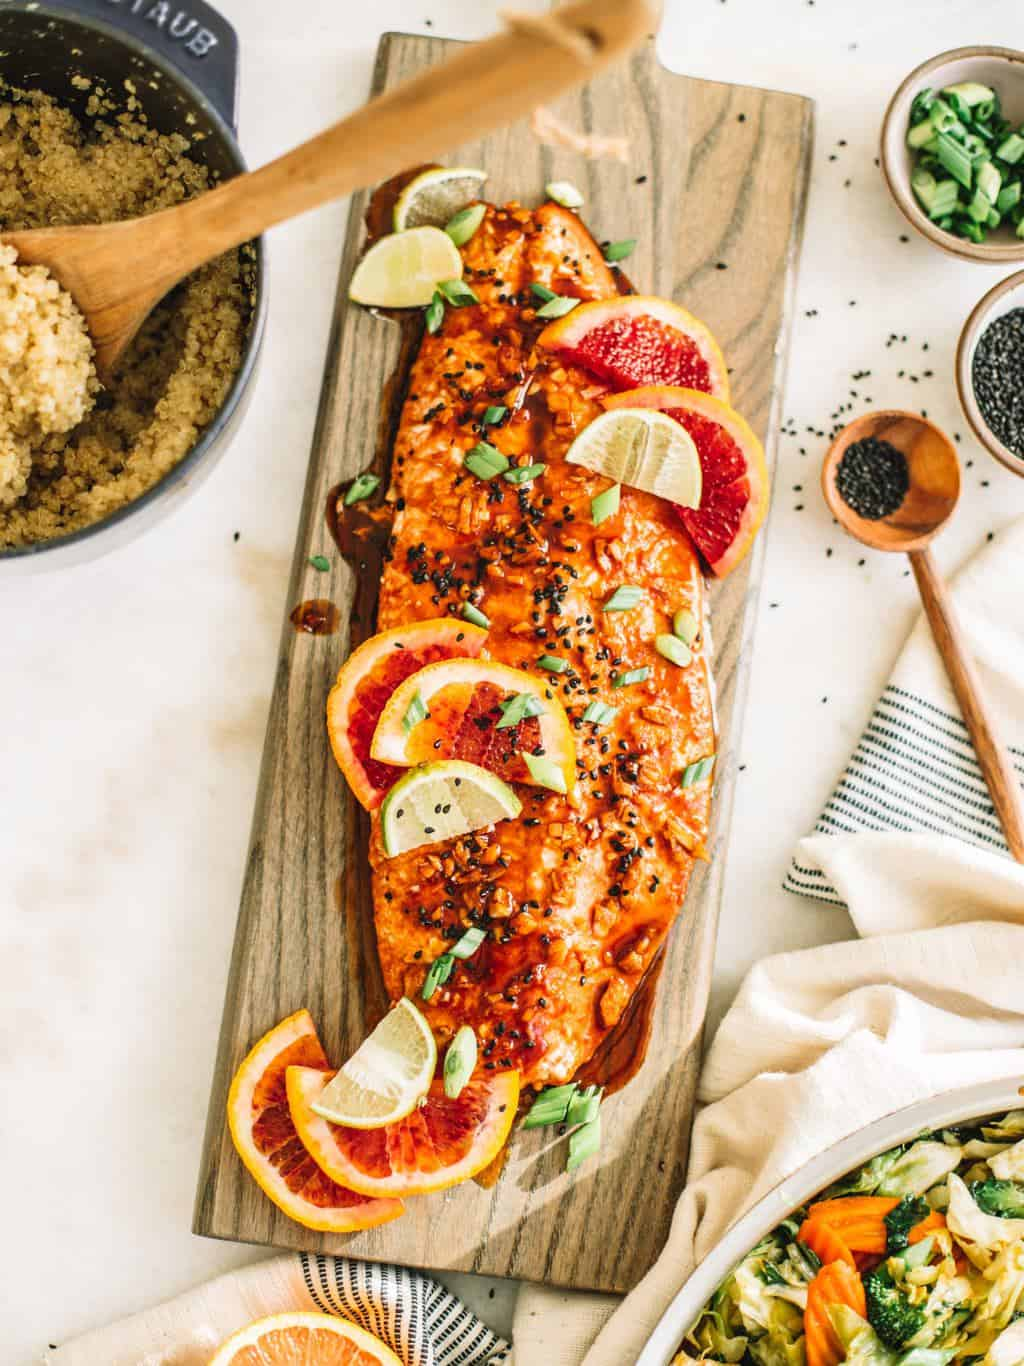 Your next weeknight dinner needs to be this blood orange salmon fillet with an easy ginger garlic stir fry. This is a tasy, flavorful and healthy recipe!